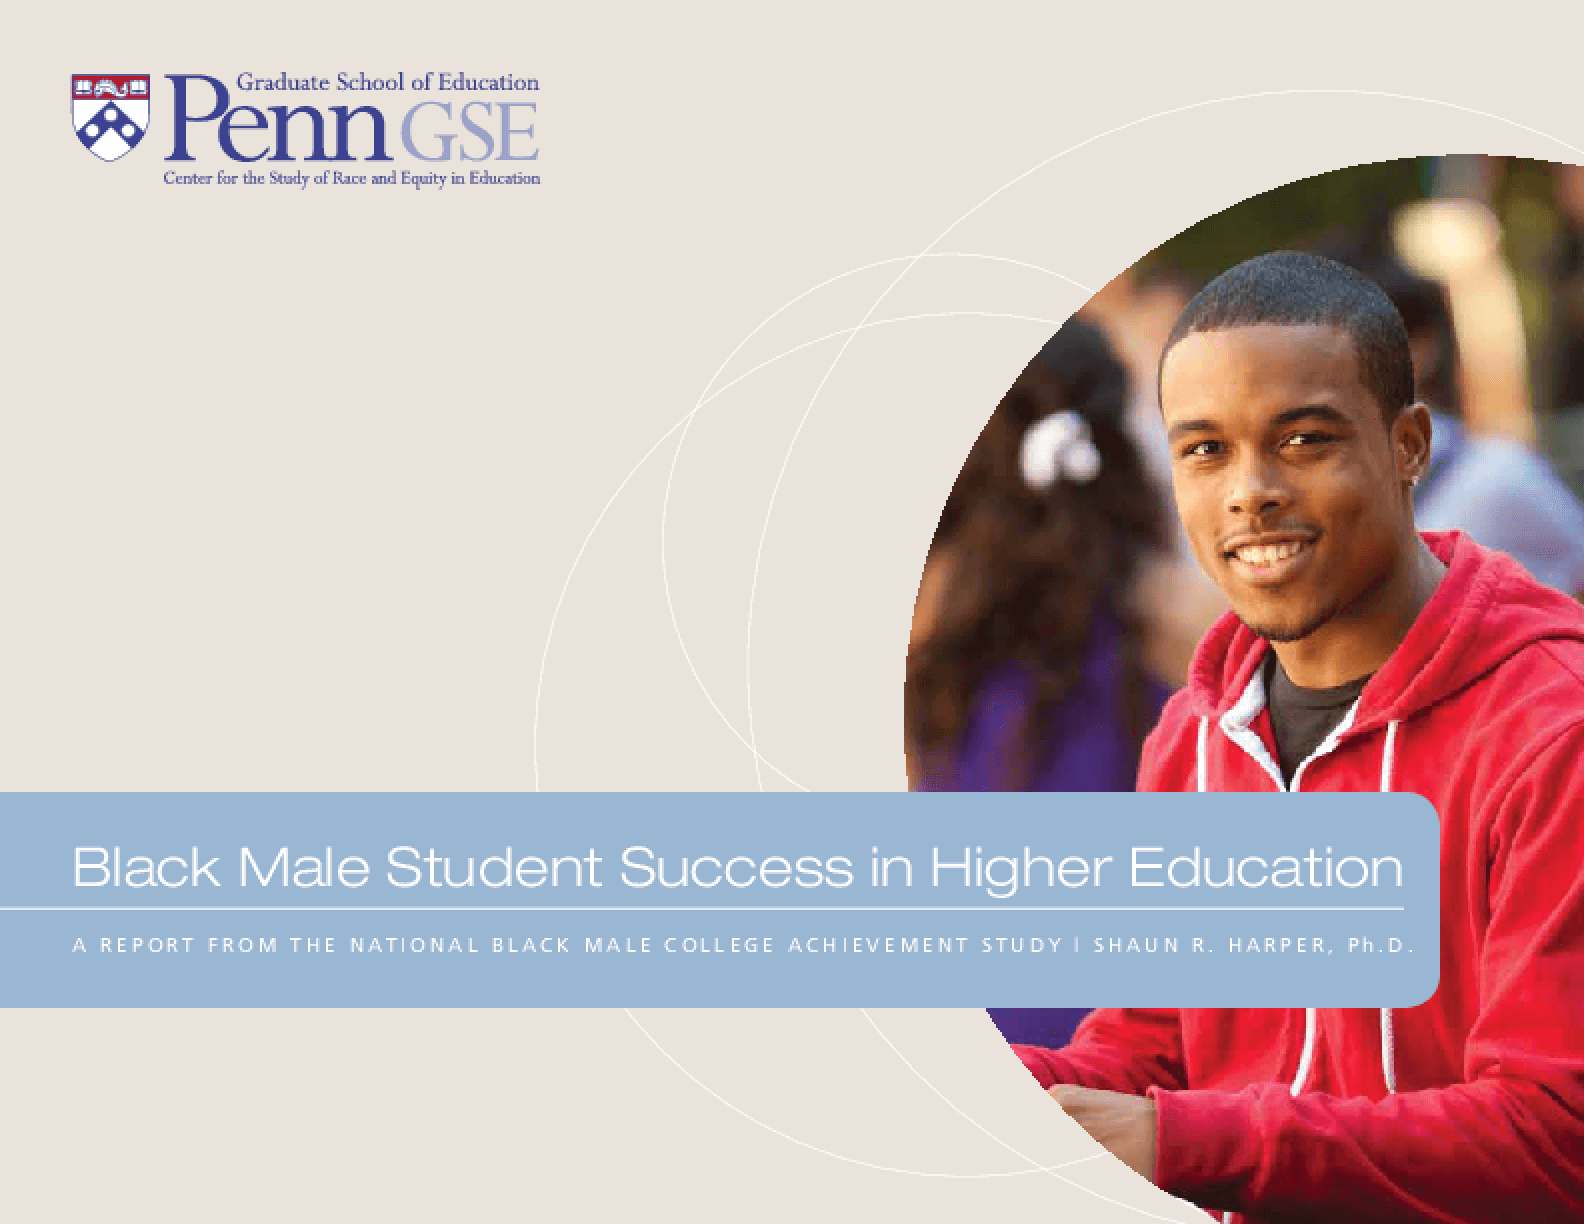 black male success in higher education essay What matters to student success: a review of the literature commissioned report for the  institute for higher education (ihep) 1998b) at the university of nevada reno, for example, 454 of the 2,432 first-year students took remedial mathematics at a per-student cost of $306 (jacobson 2006) for these and related reasons, the american college.